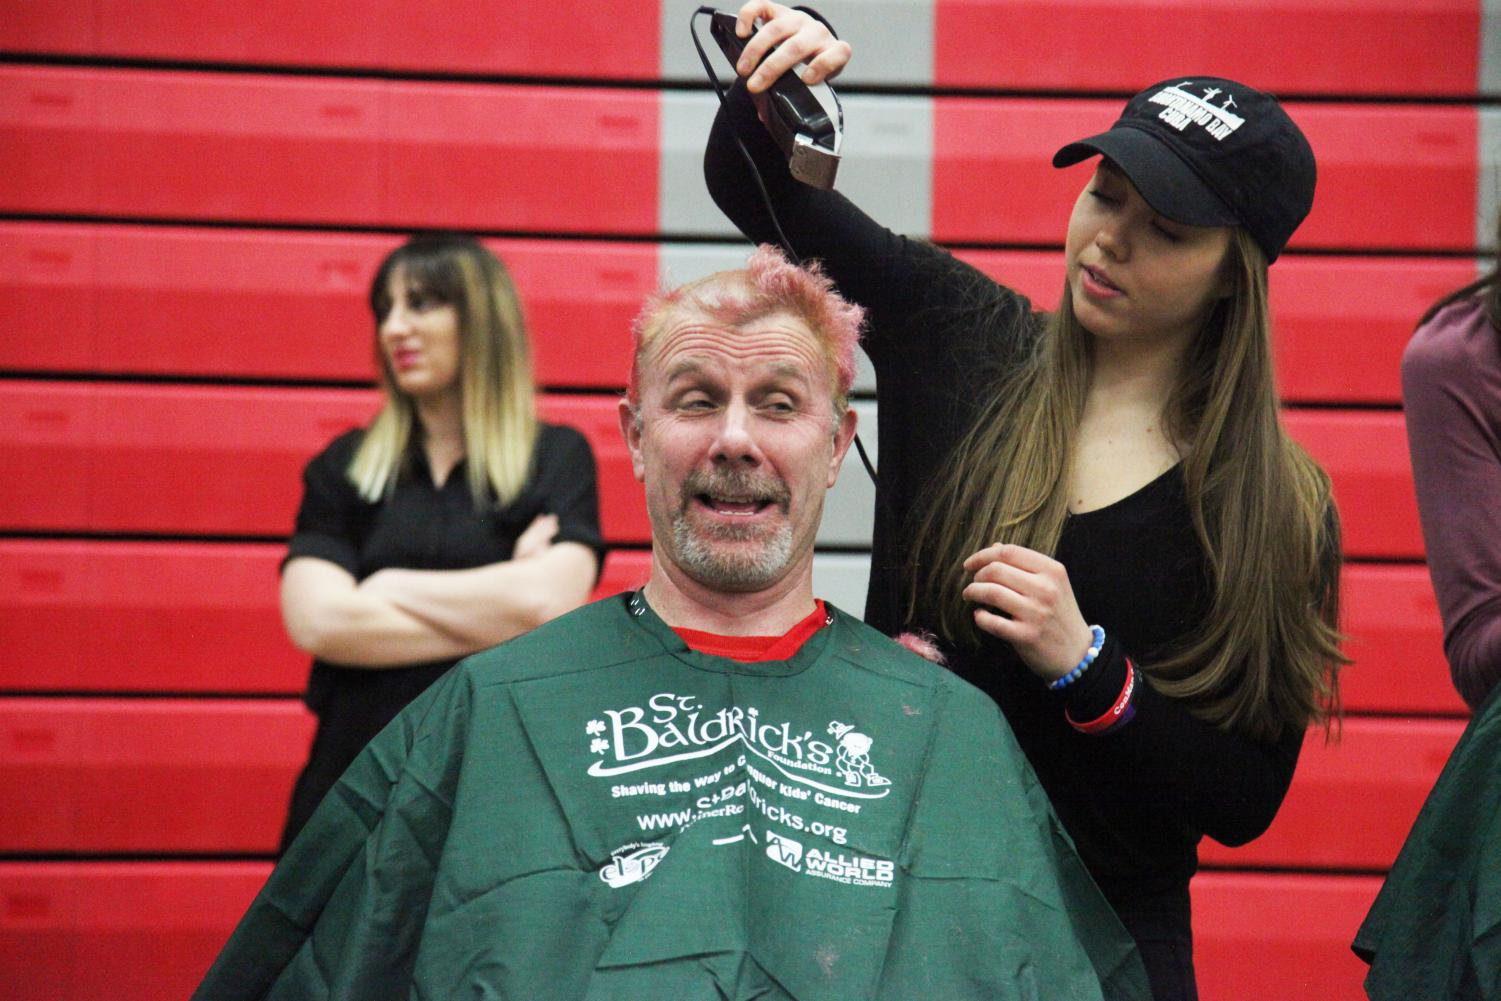 Senior Mary Amato shaves social studies teacher Todd Holmberg's head. Each year, he asks his classes to raise money for St. Baldrick's. Students bring in money to enter a raffle for the chance to shave his head.